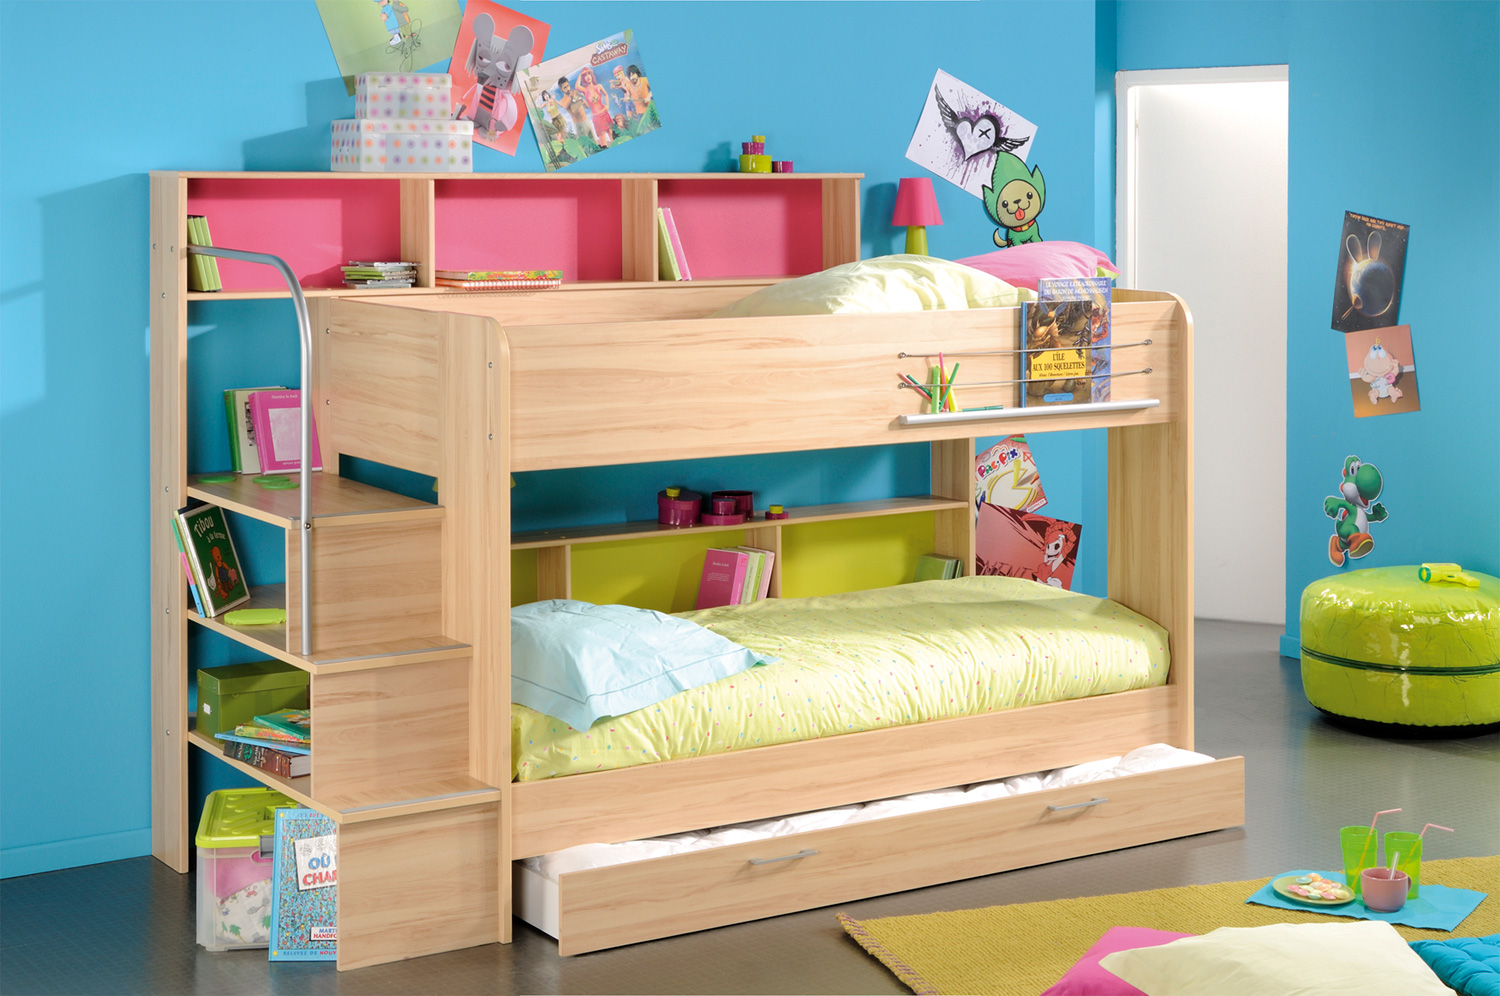 Space saving stylish bunk beds for your home 4 beds in one room